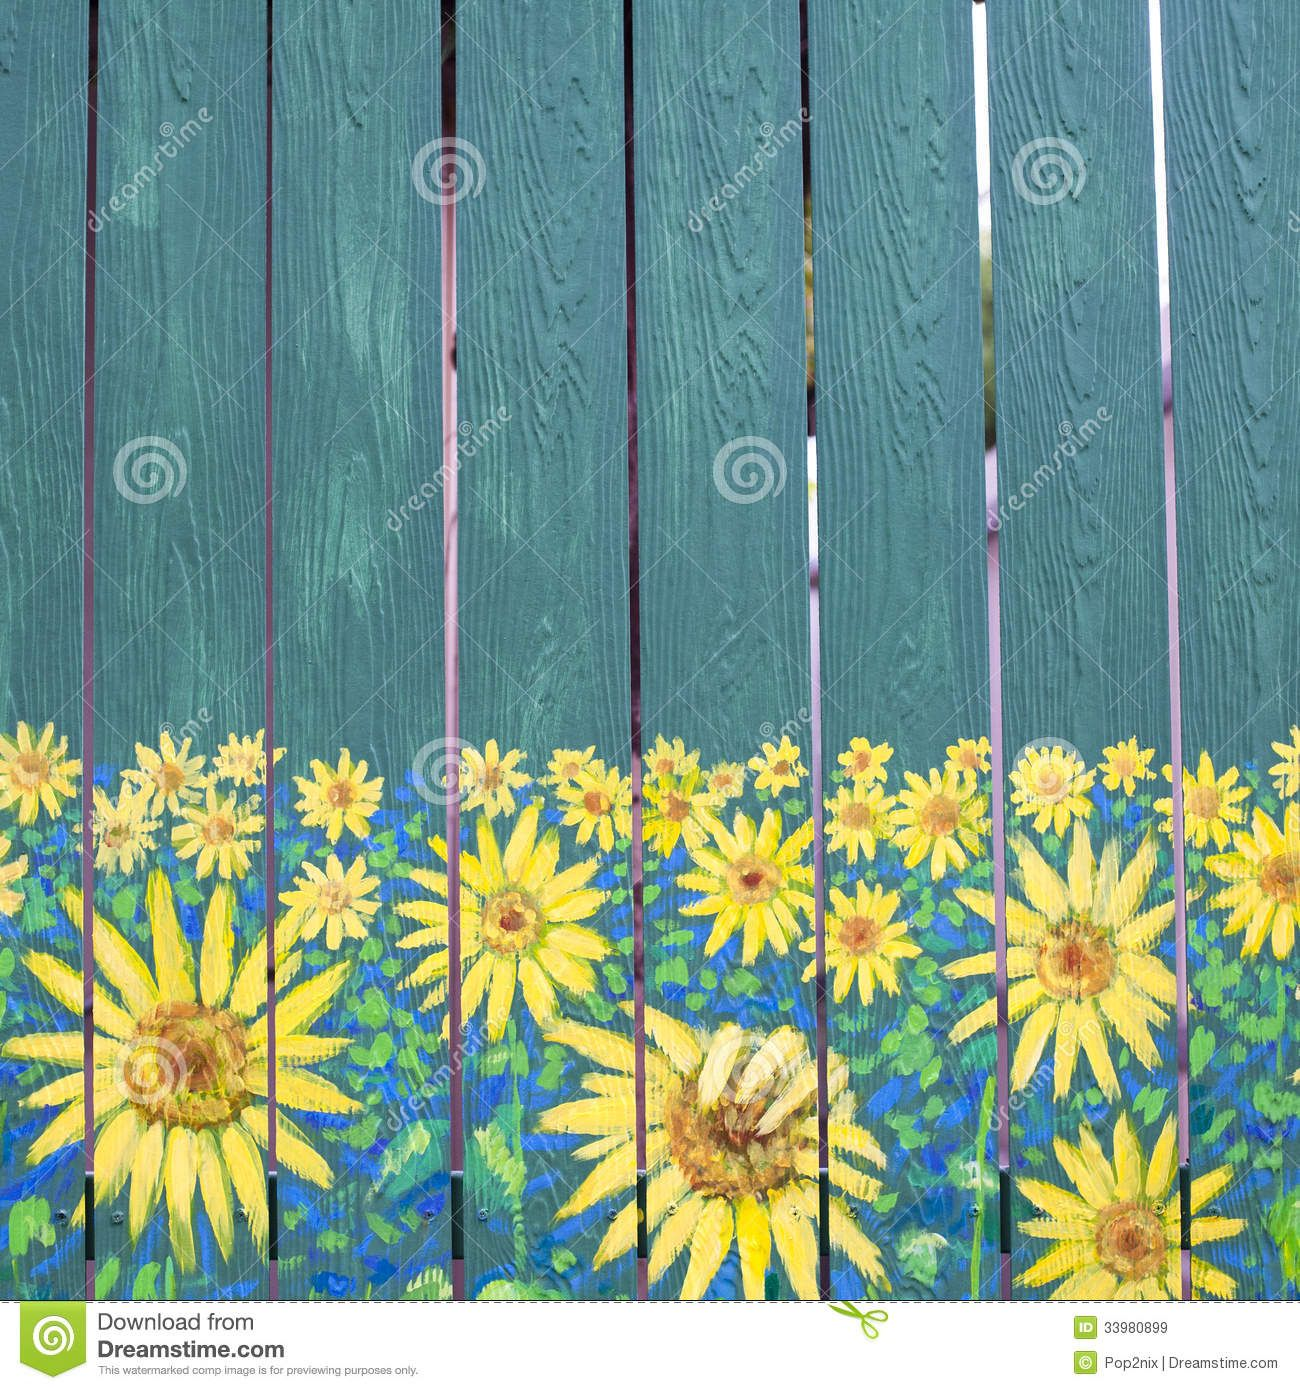 Sunflowers Painting On Fence Wood Download From Over 42